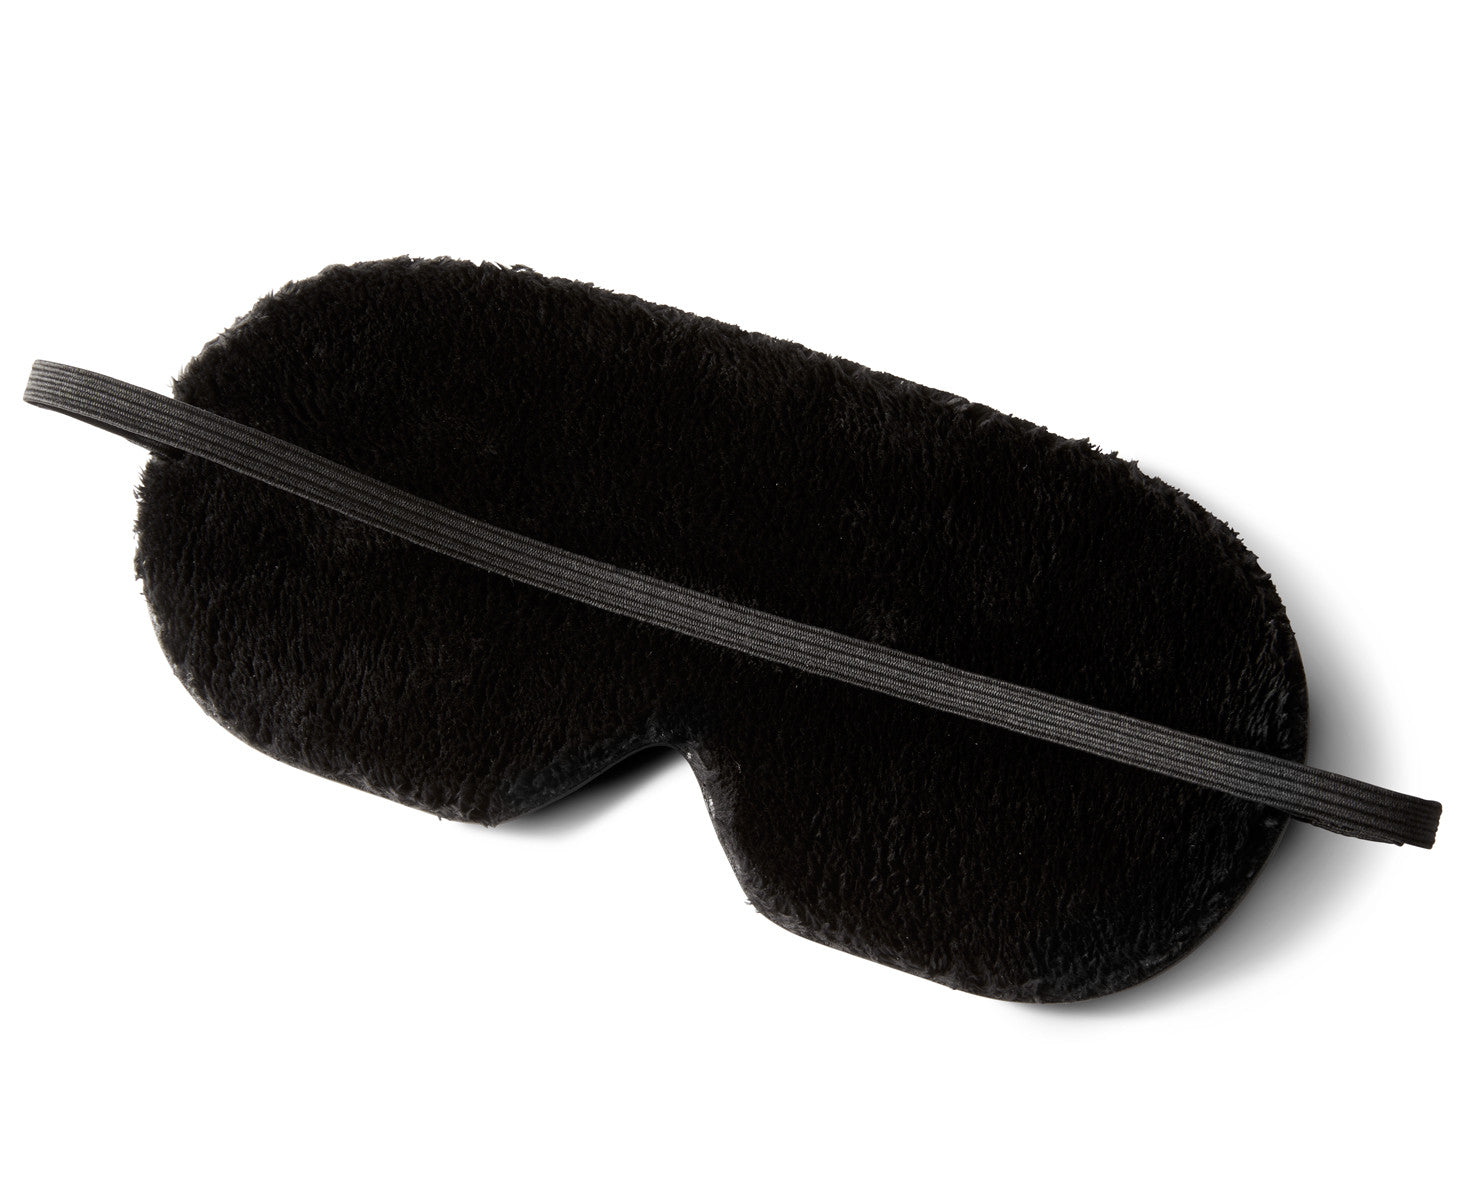 SLEEP MASK | KILLSPENCER® - Black Leather